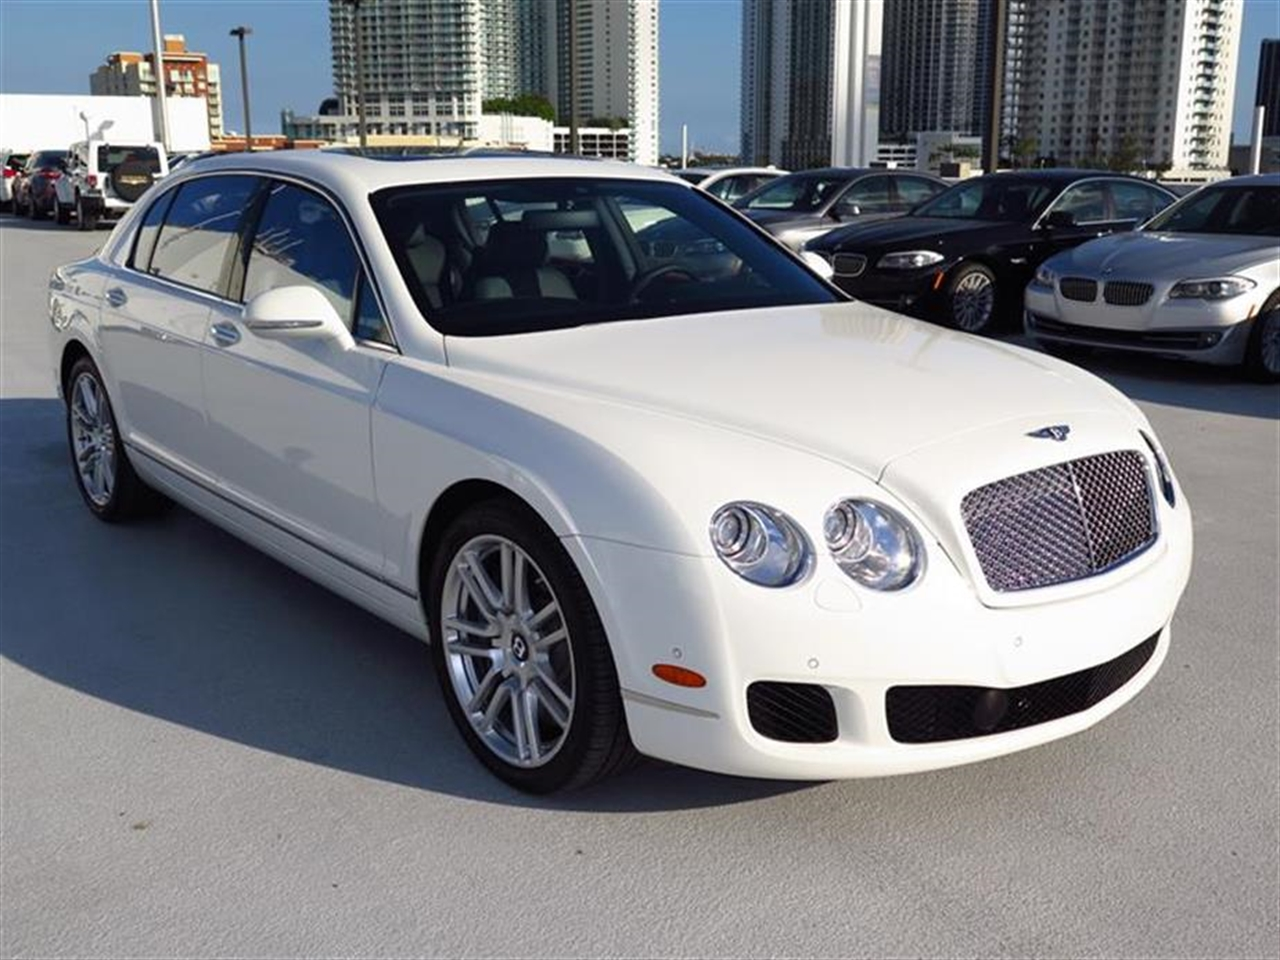 2013 BENTLEY CONTINENTAL FLYING SPUR 4dr Sdn 1358 miles 4-spoke monotone leather trimmed steering